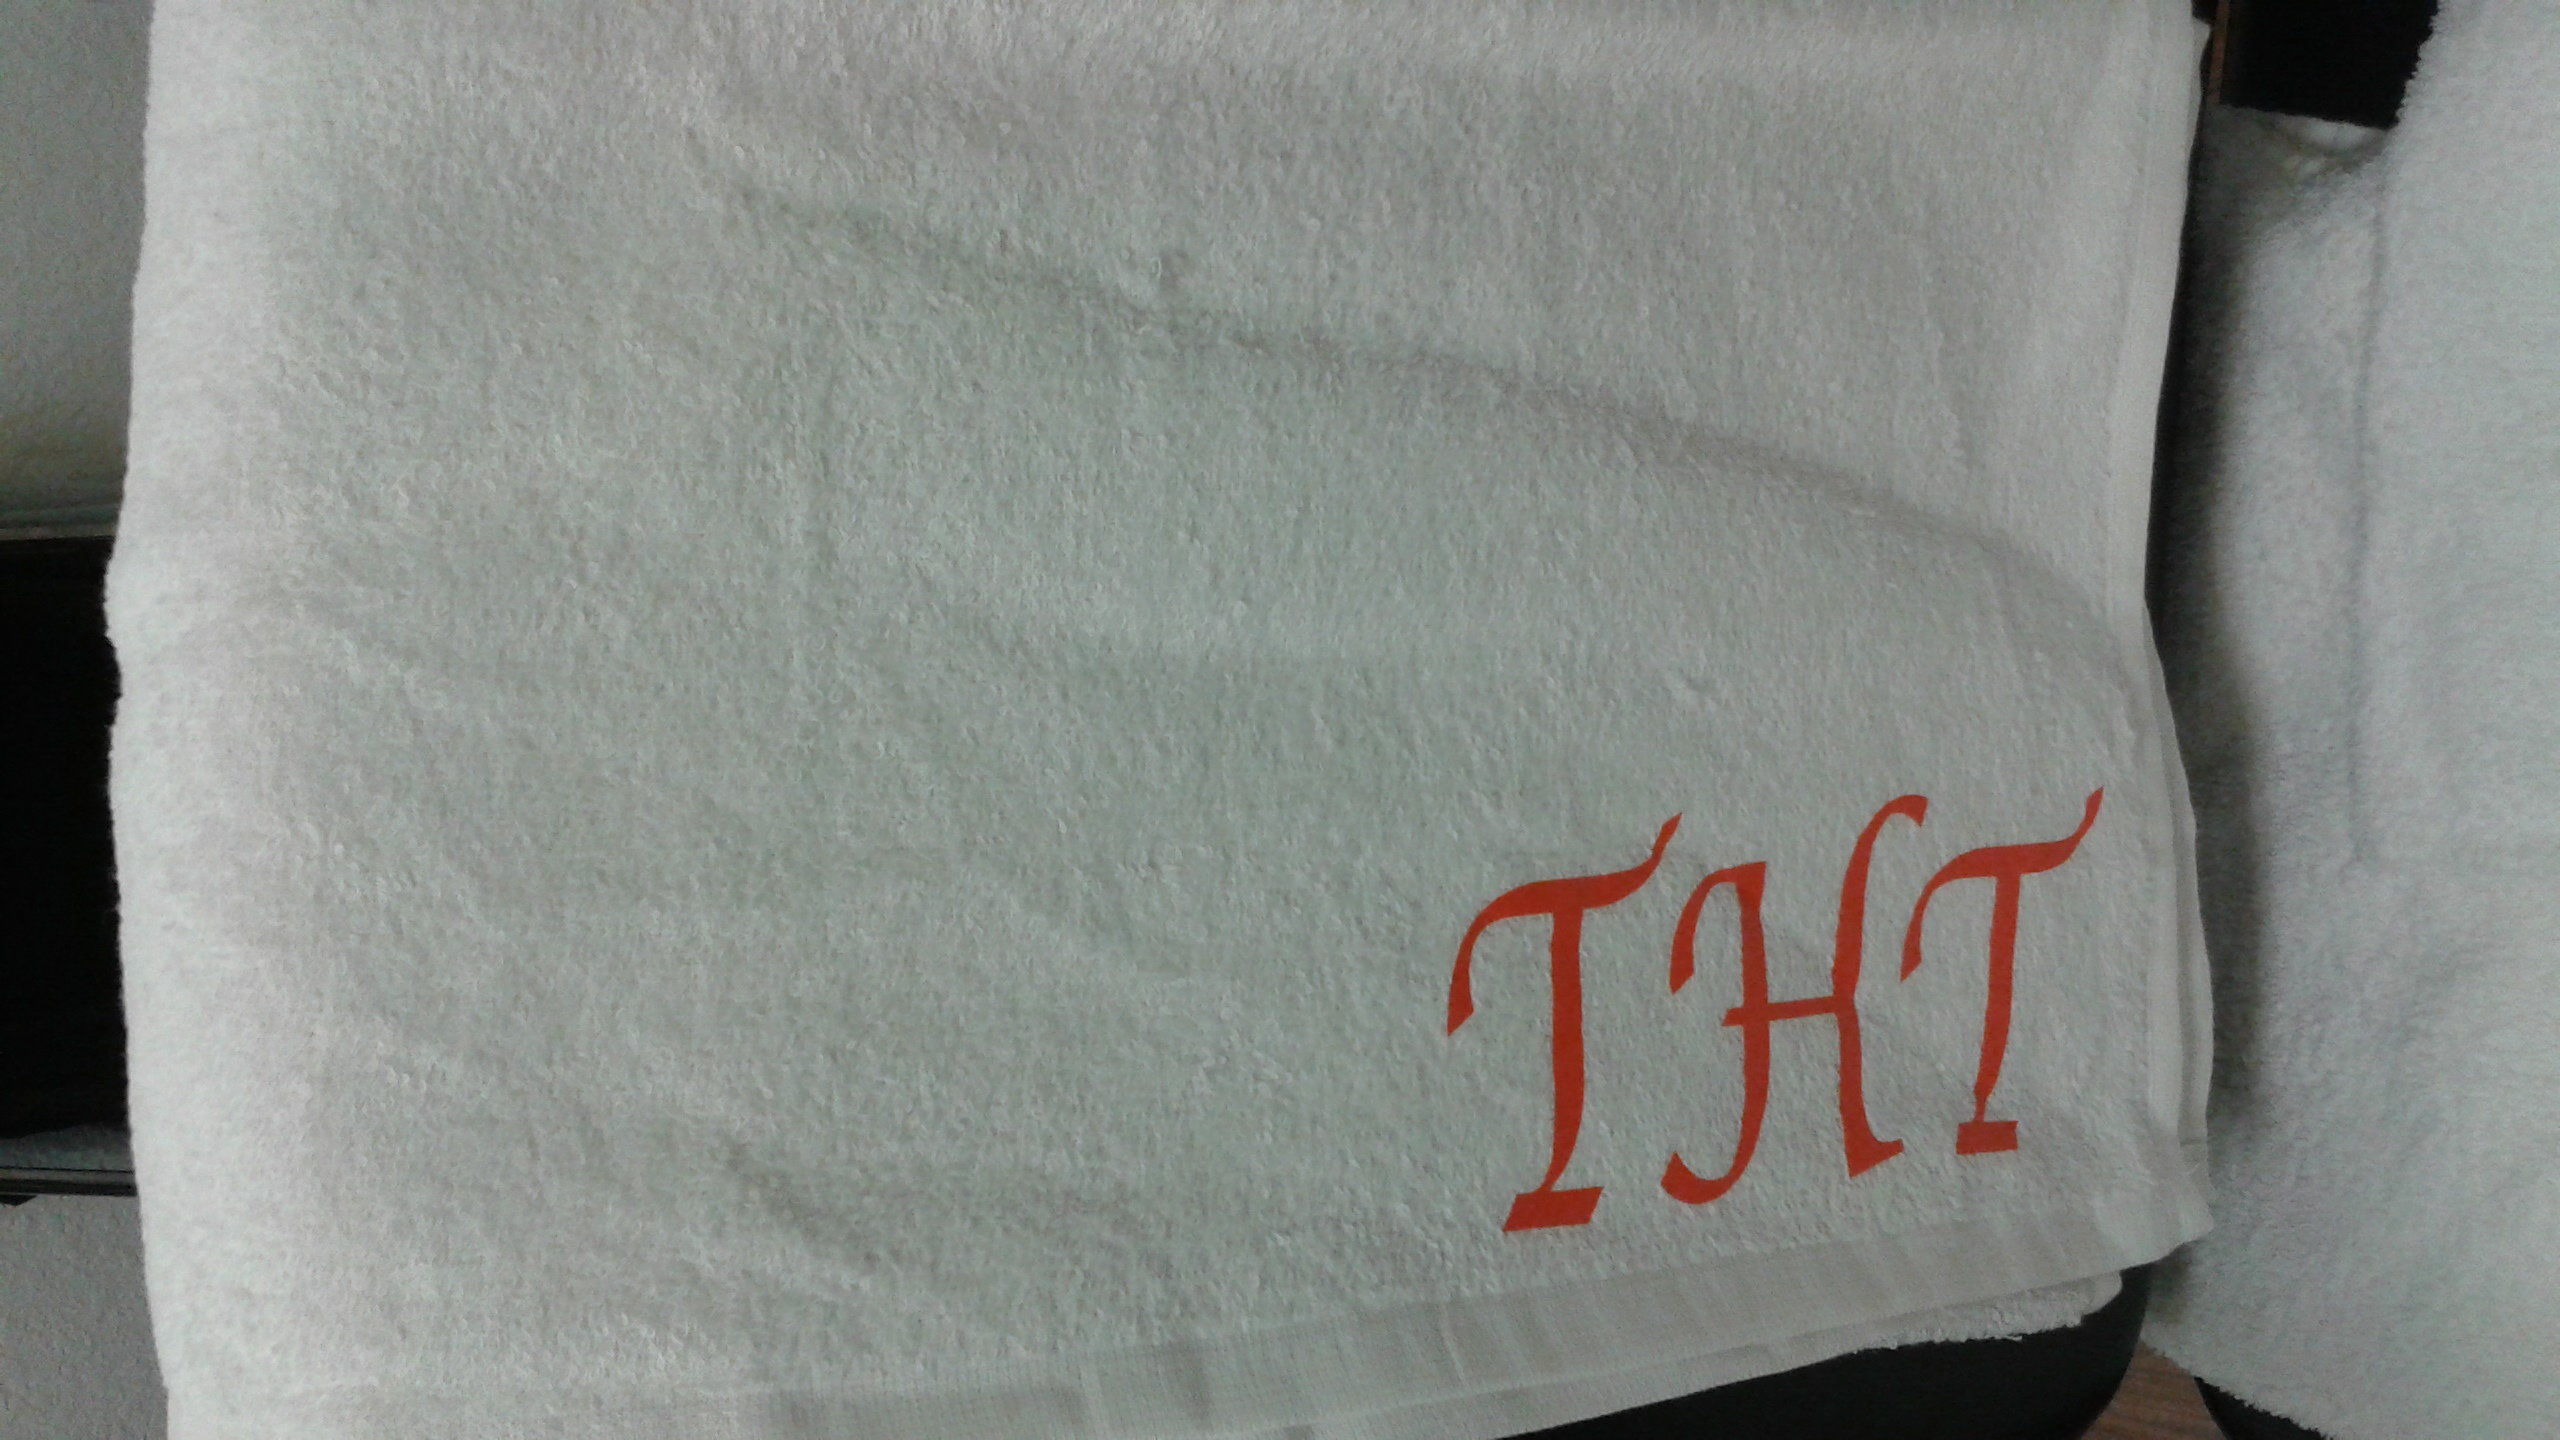 THT Branded Towels